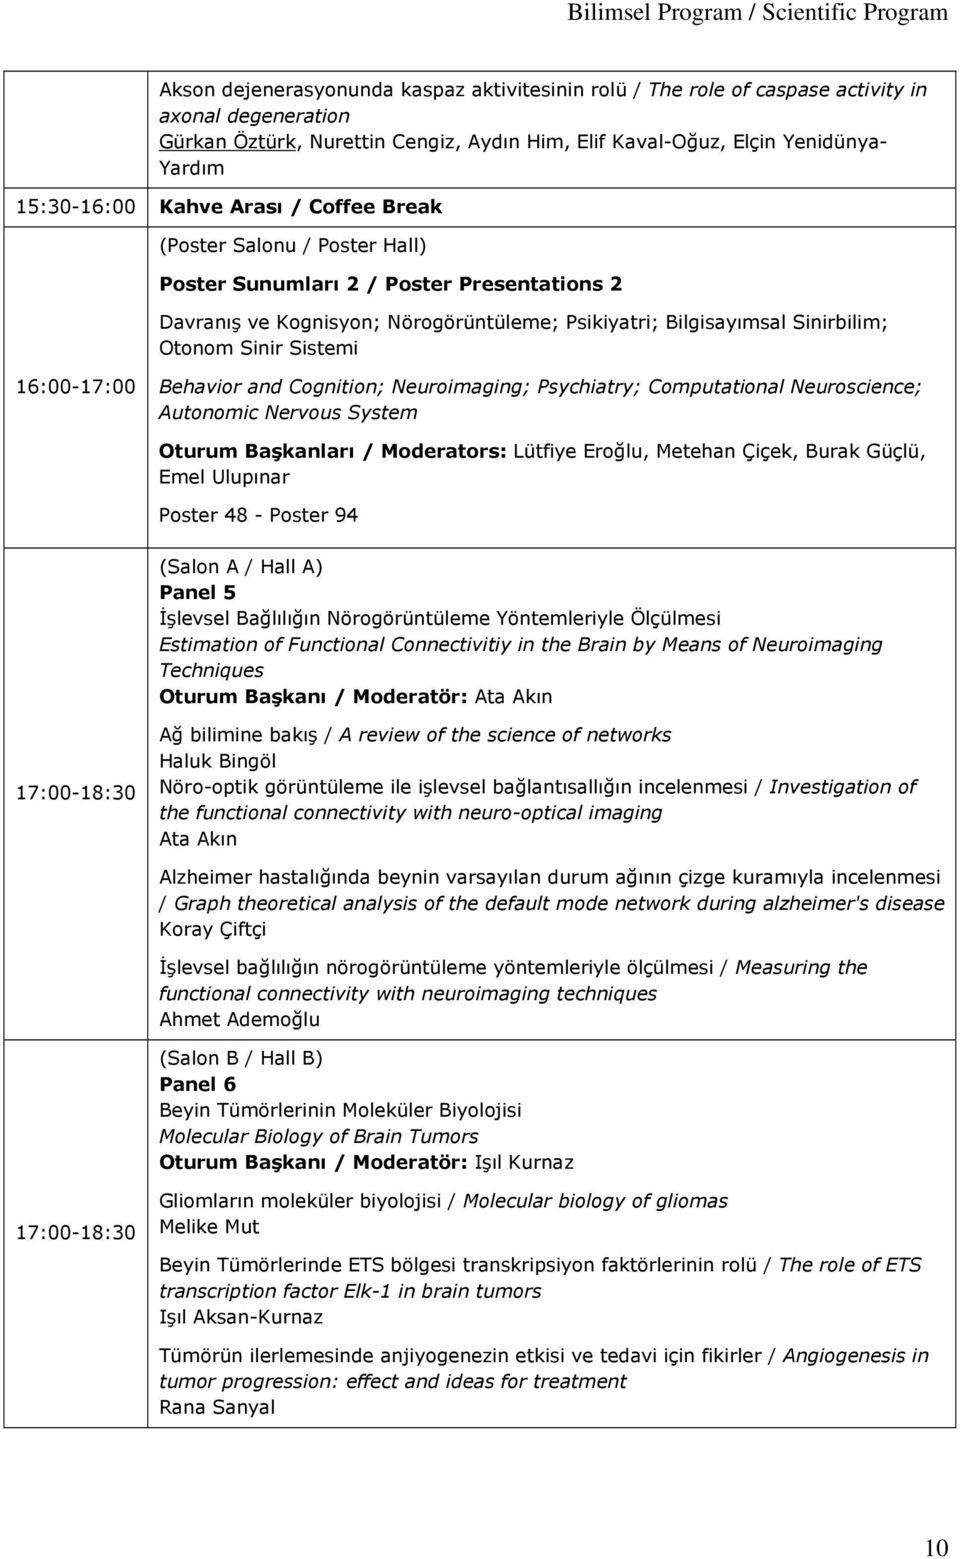 Psikiyatri; Bilgisayımsal Sinirbilim; Otonom Sinir Sistemi 16:00-17:00 Behavior and Cognition; Neuroimaging; Psychiatry; Computational Neuroscience; Autonomic Nervous System Oturum Başkanları /